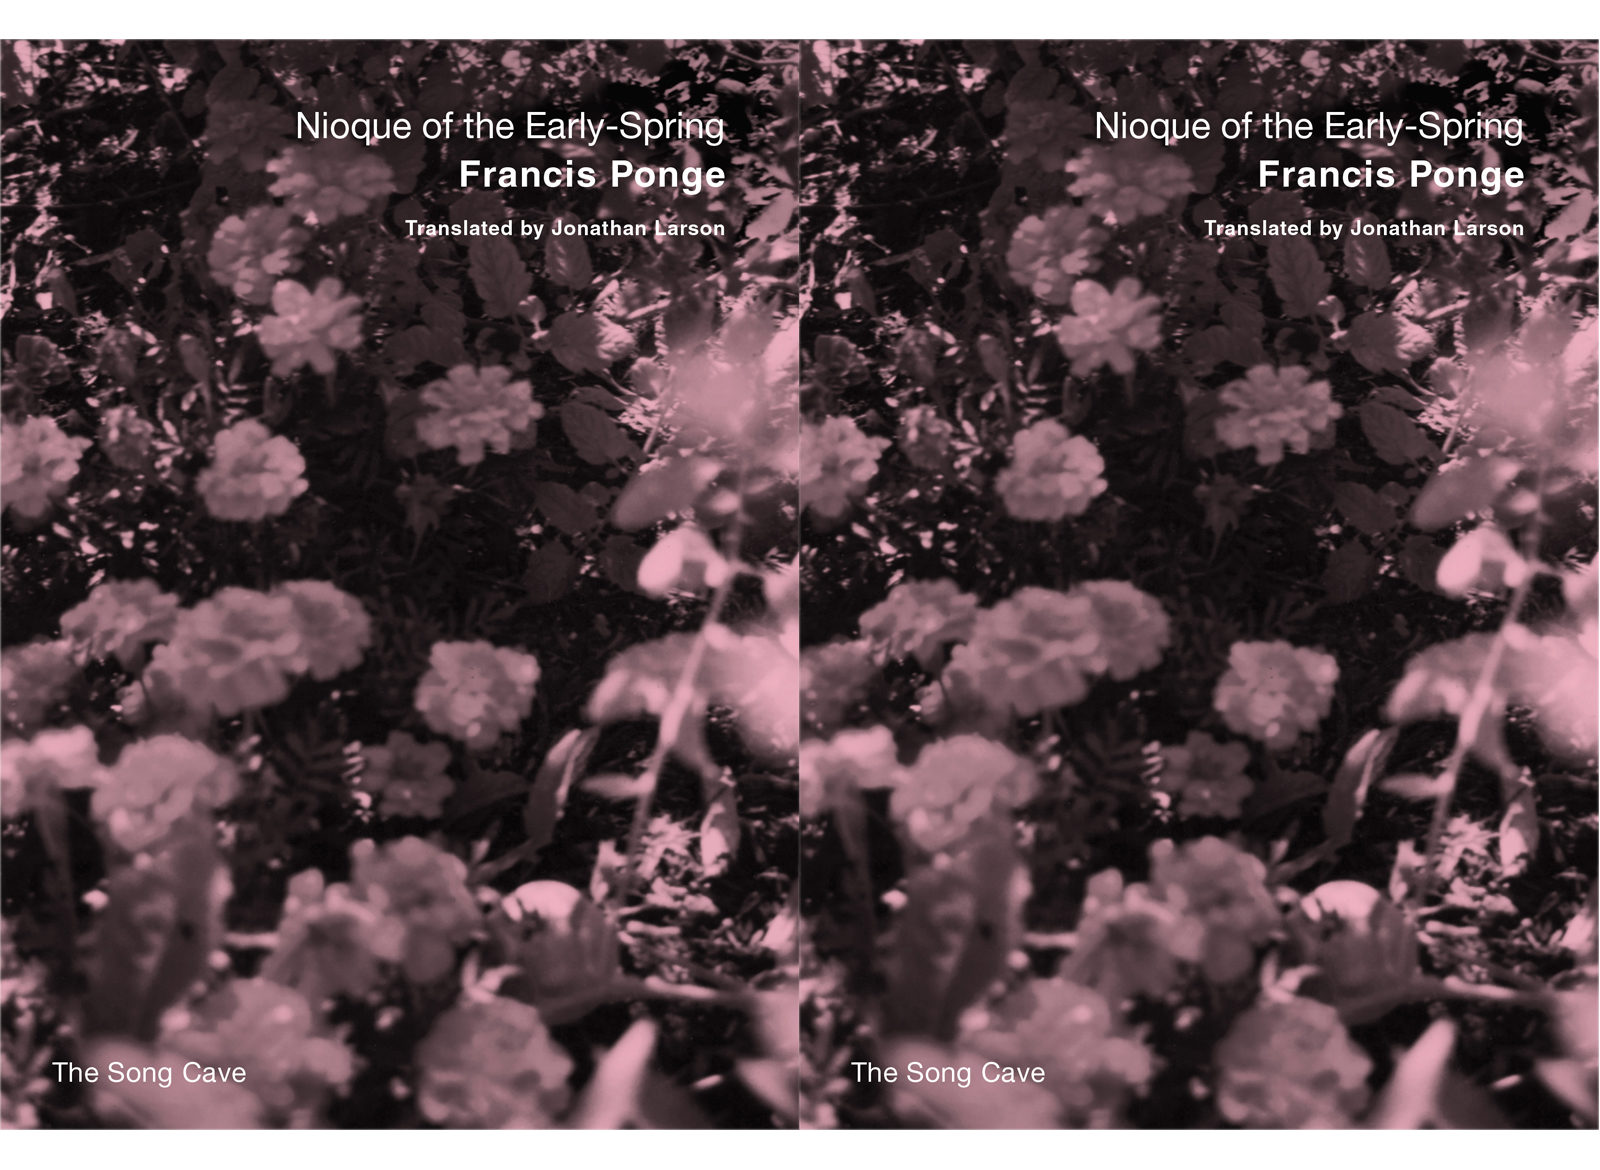 Jonathan Larson On His Translation Of The Poetry Of Francis Ponge